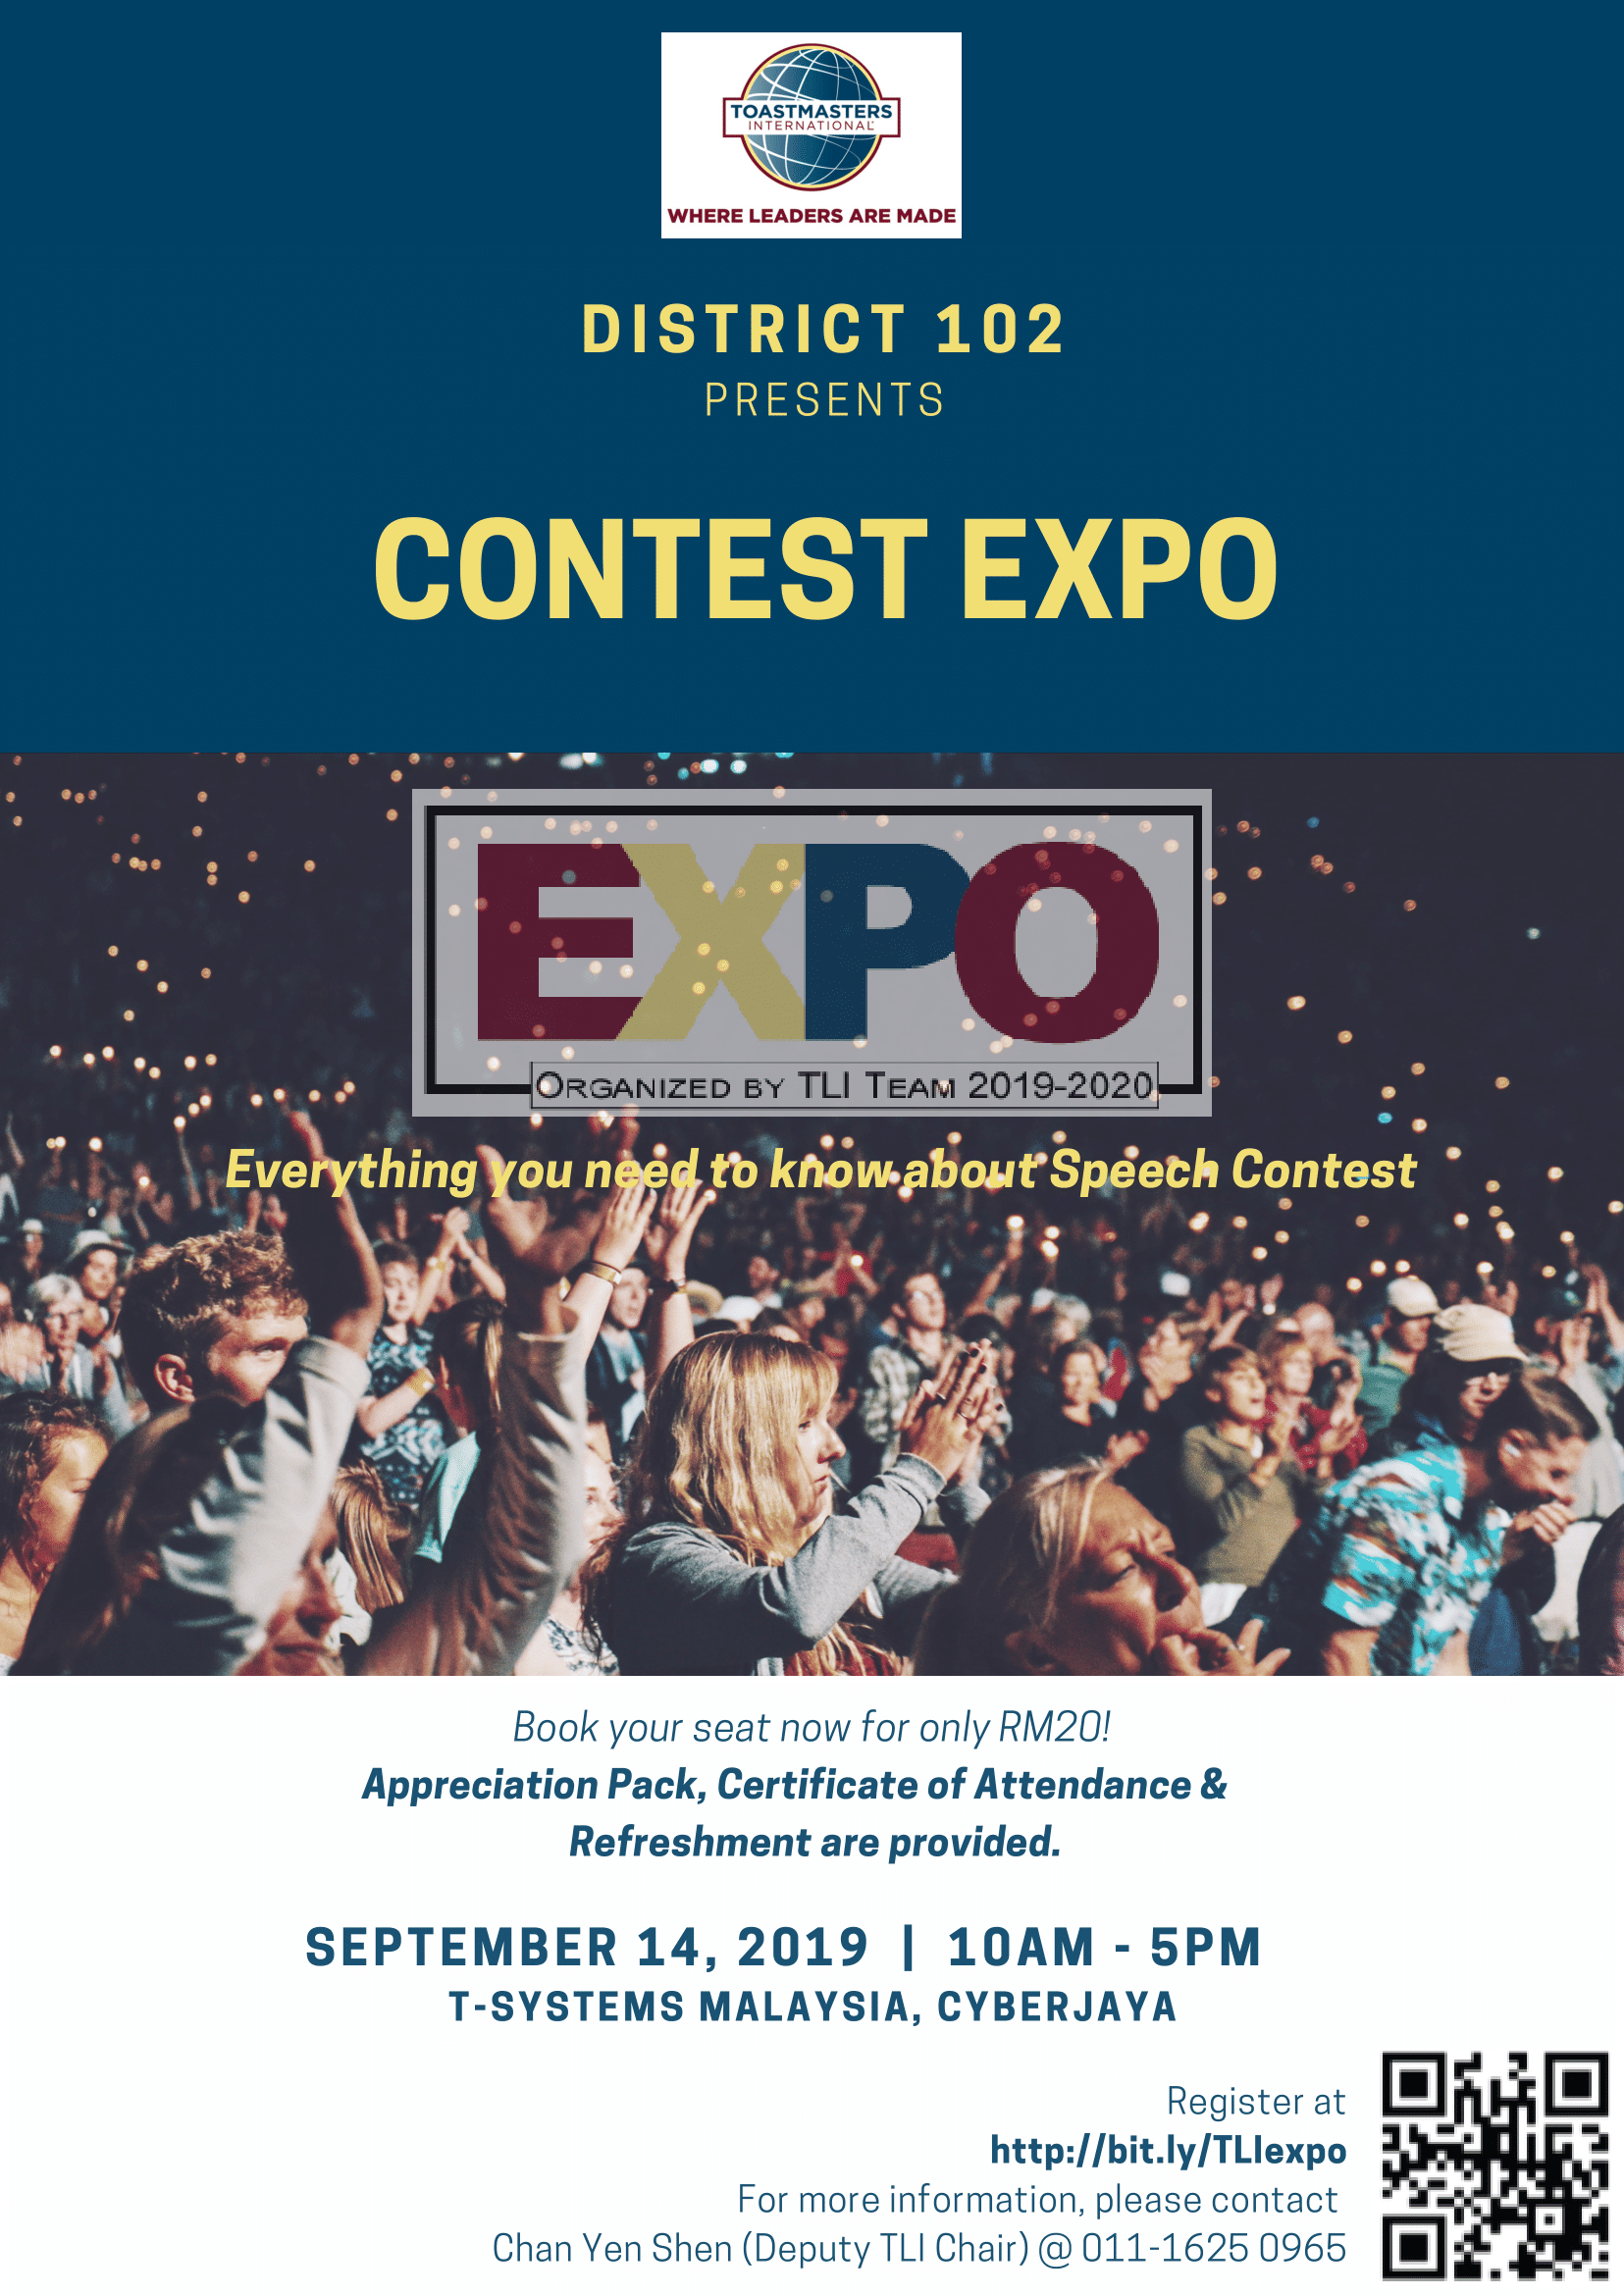 Toastmaster's District 102 Contest Expo 2019/2020